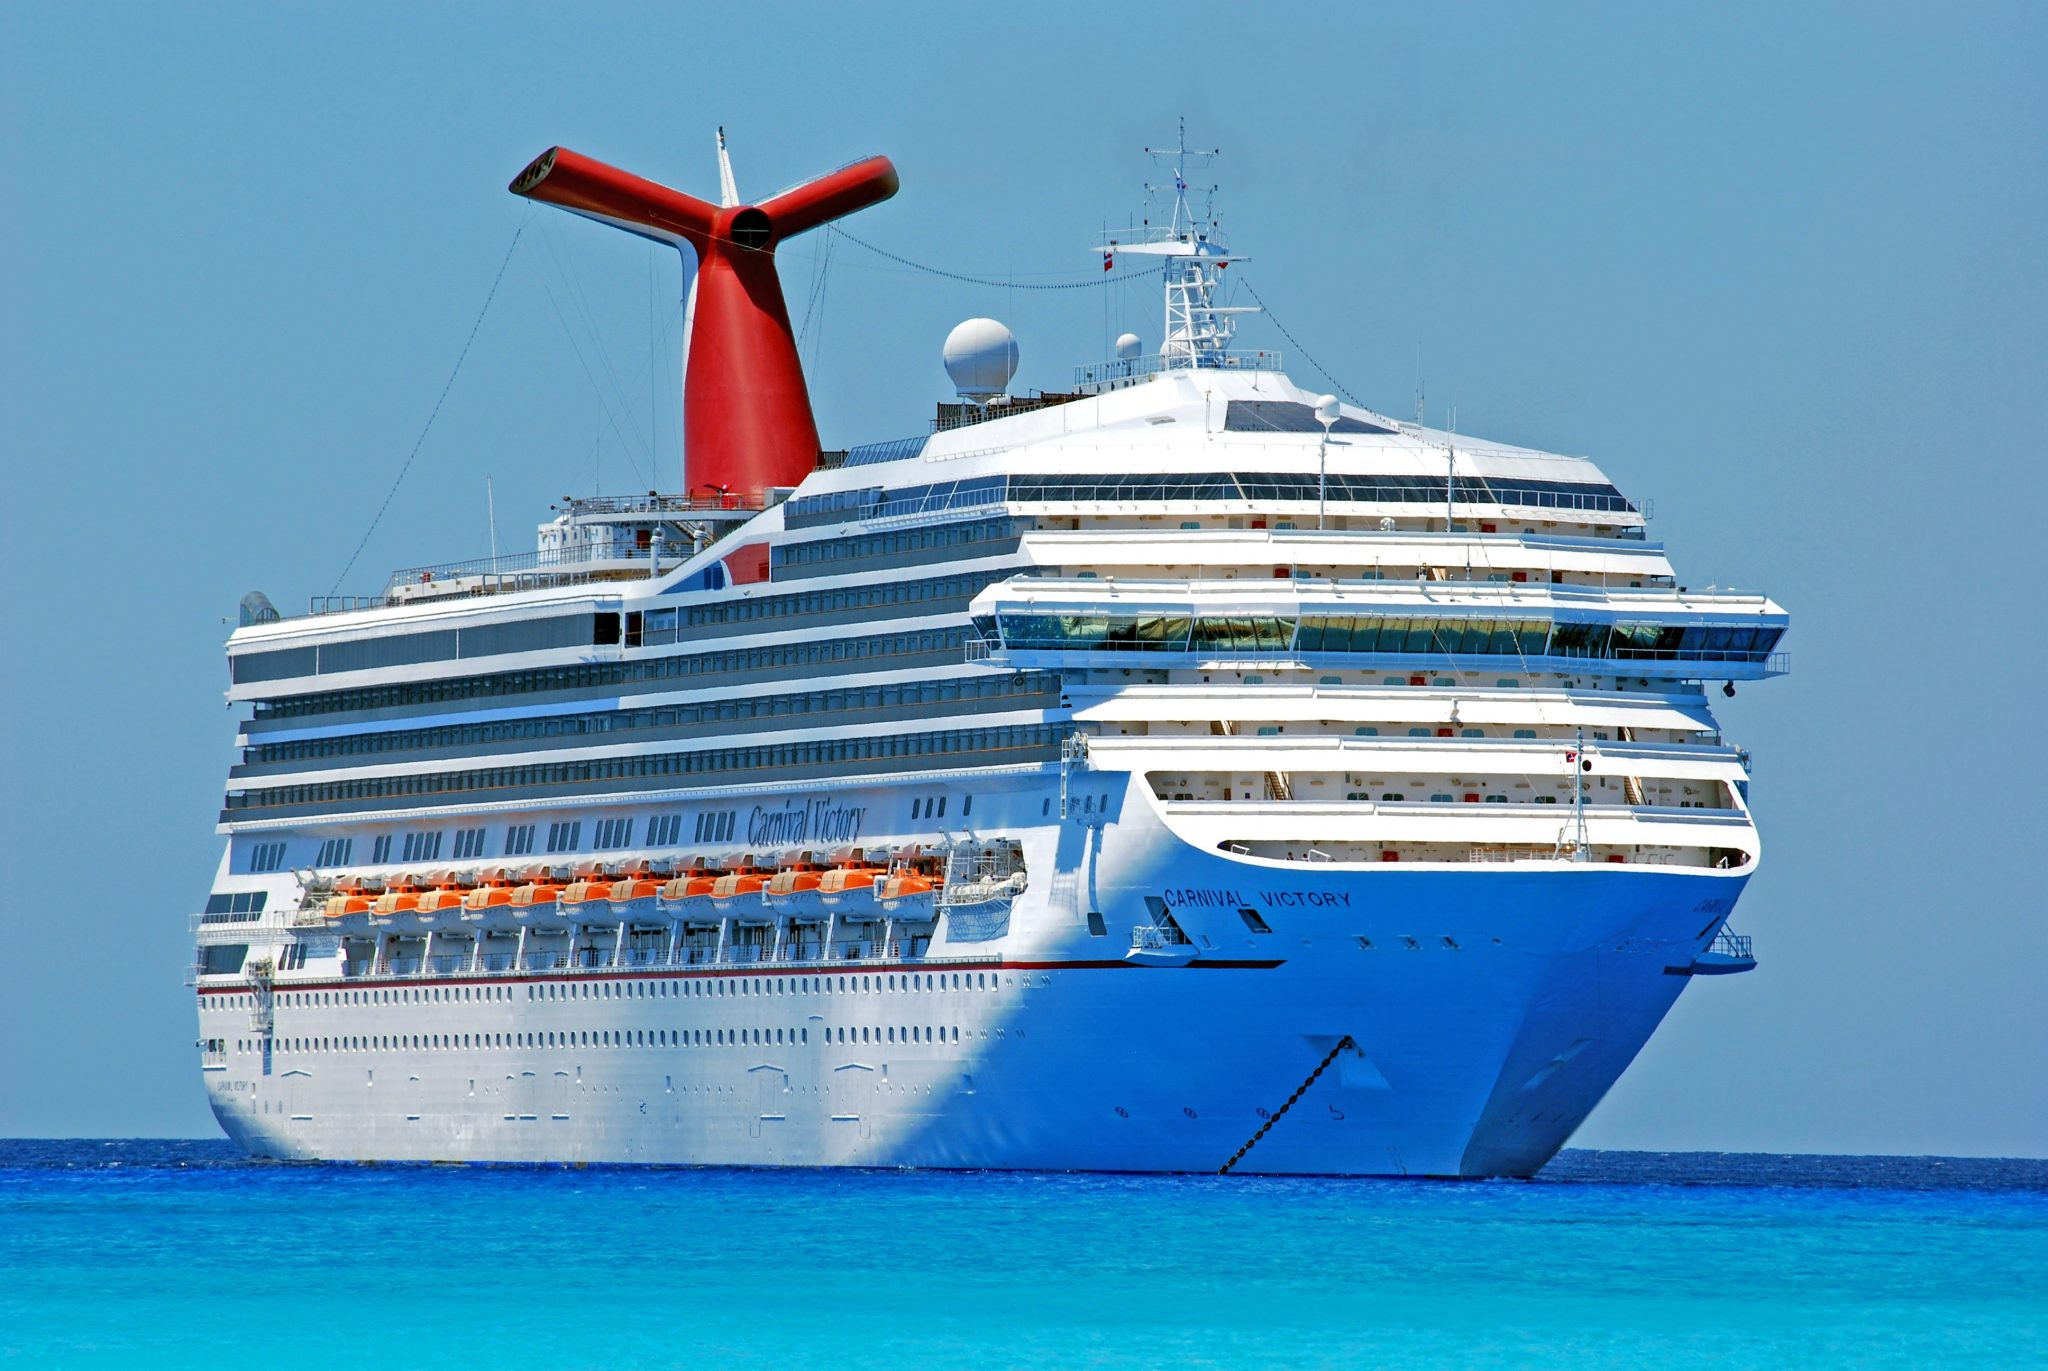 Cruise Parking a Complete Guide